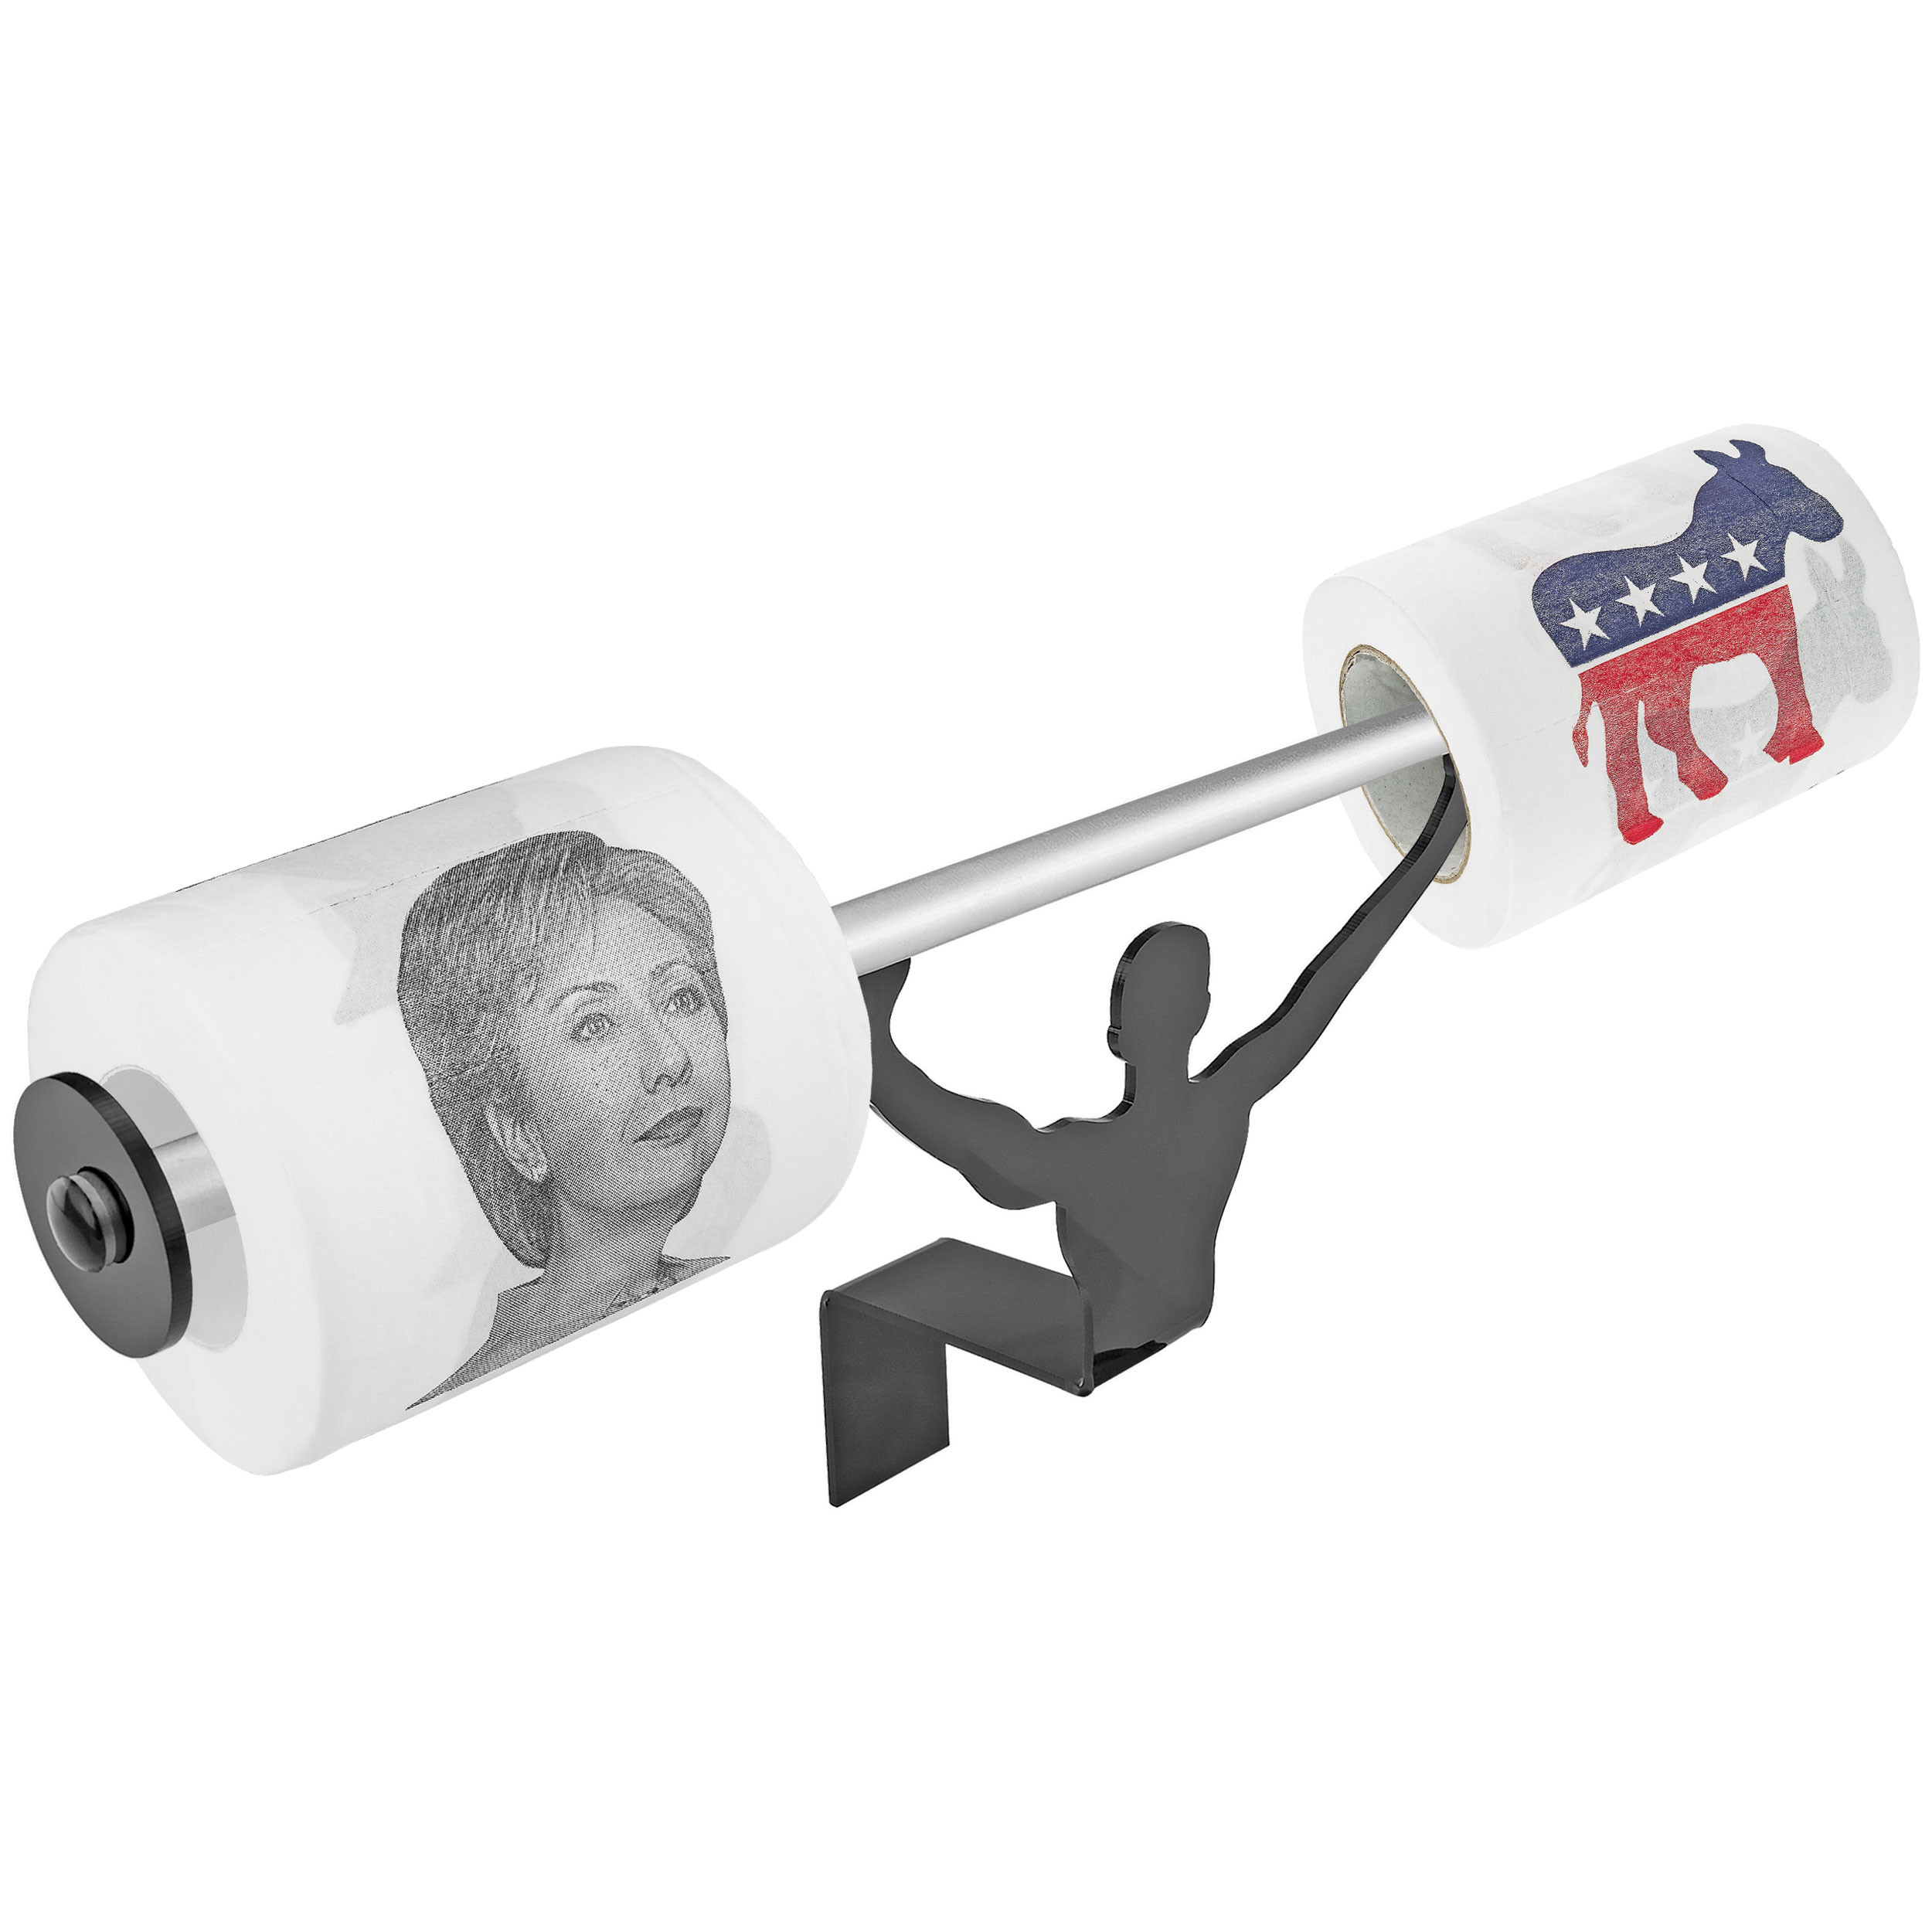 Fairly Odd Novelties Hillary Clinton Toilet Paper W/Strong Man Holder Democrats Political Gift Set